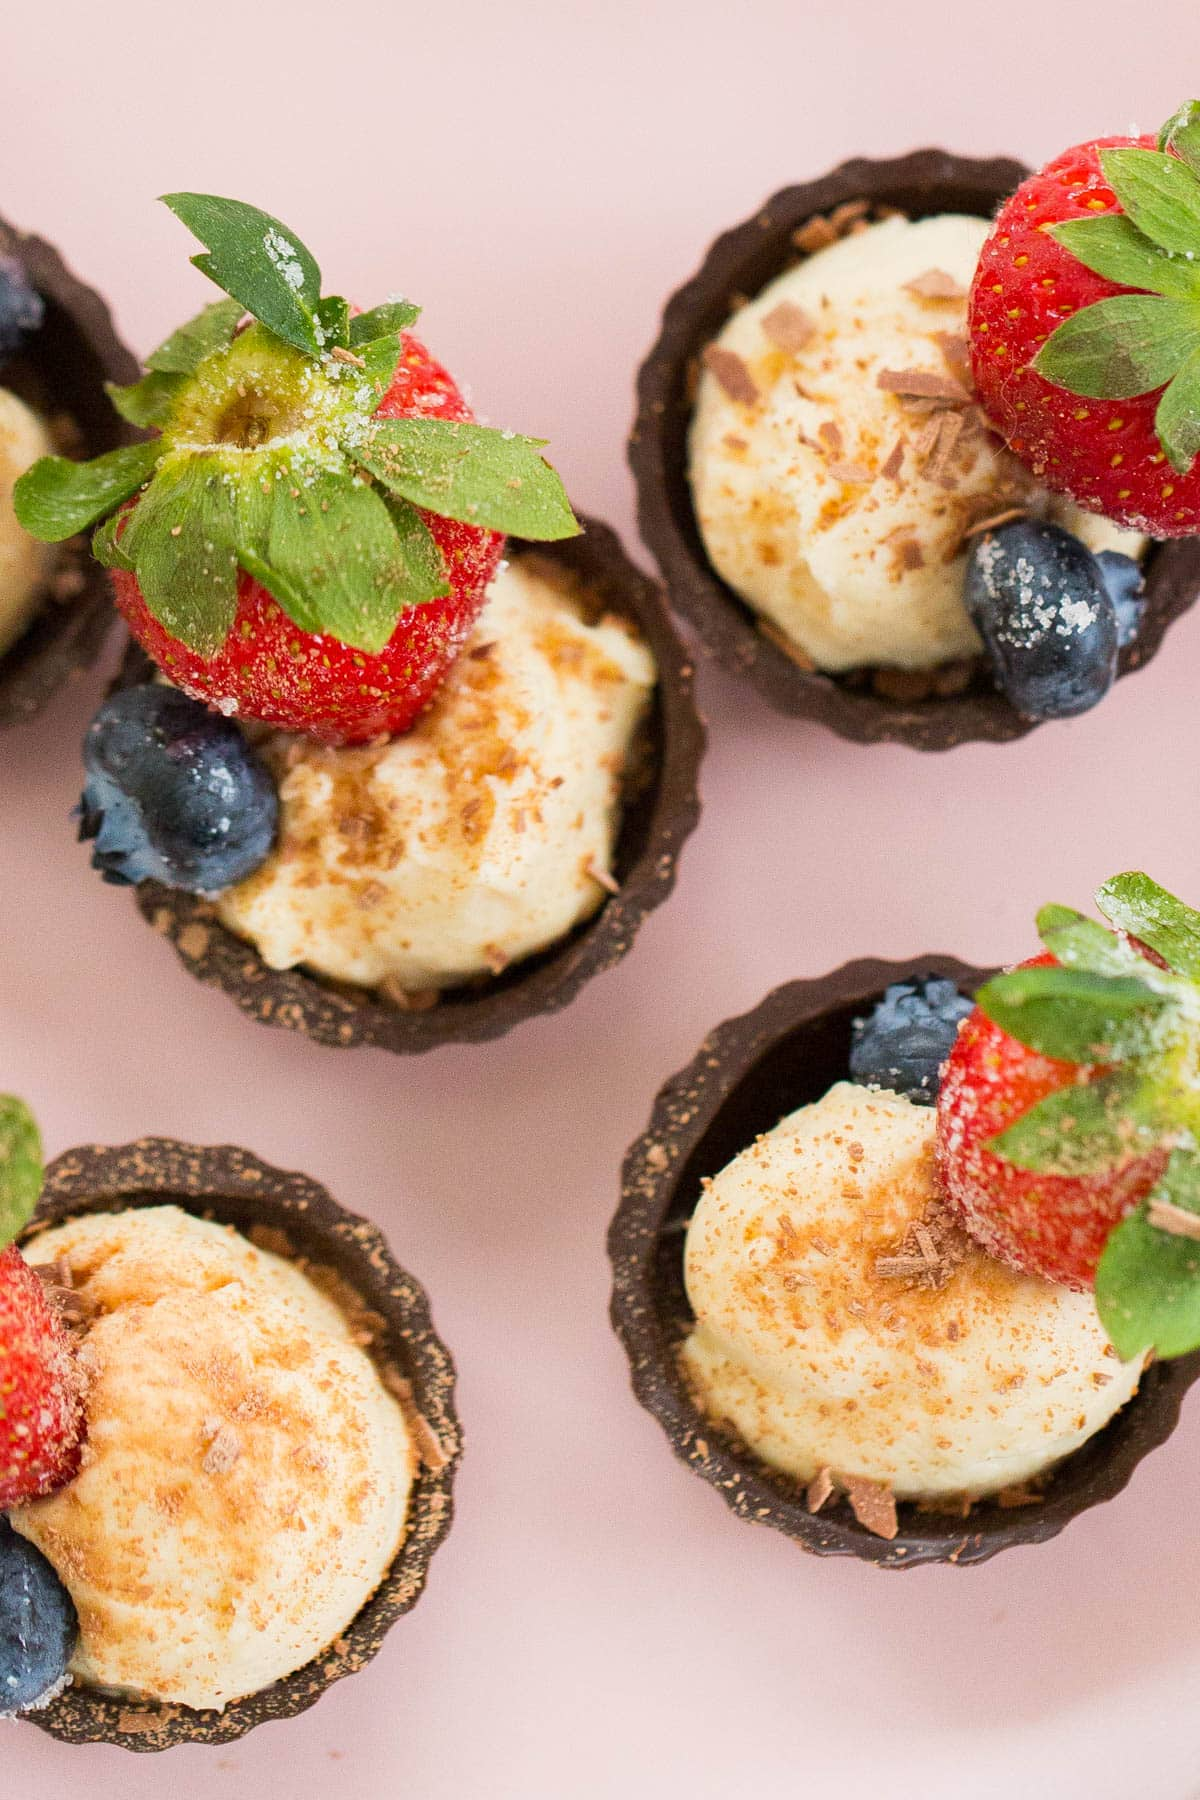 Chocolate Fruit Cheese Cups Recipe by top Houston blogger, Ashley Rose of Sugar and Cloth